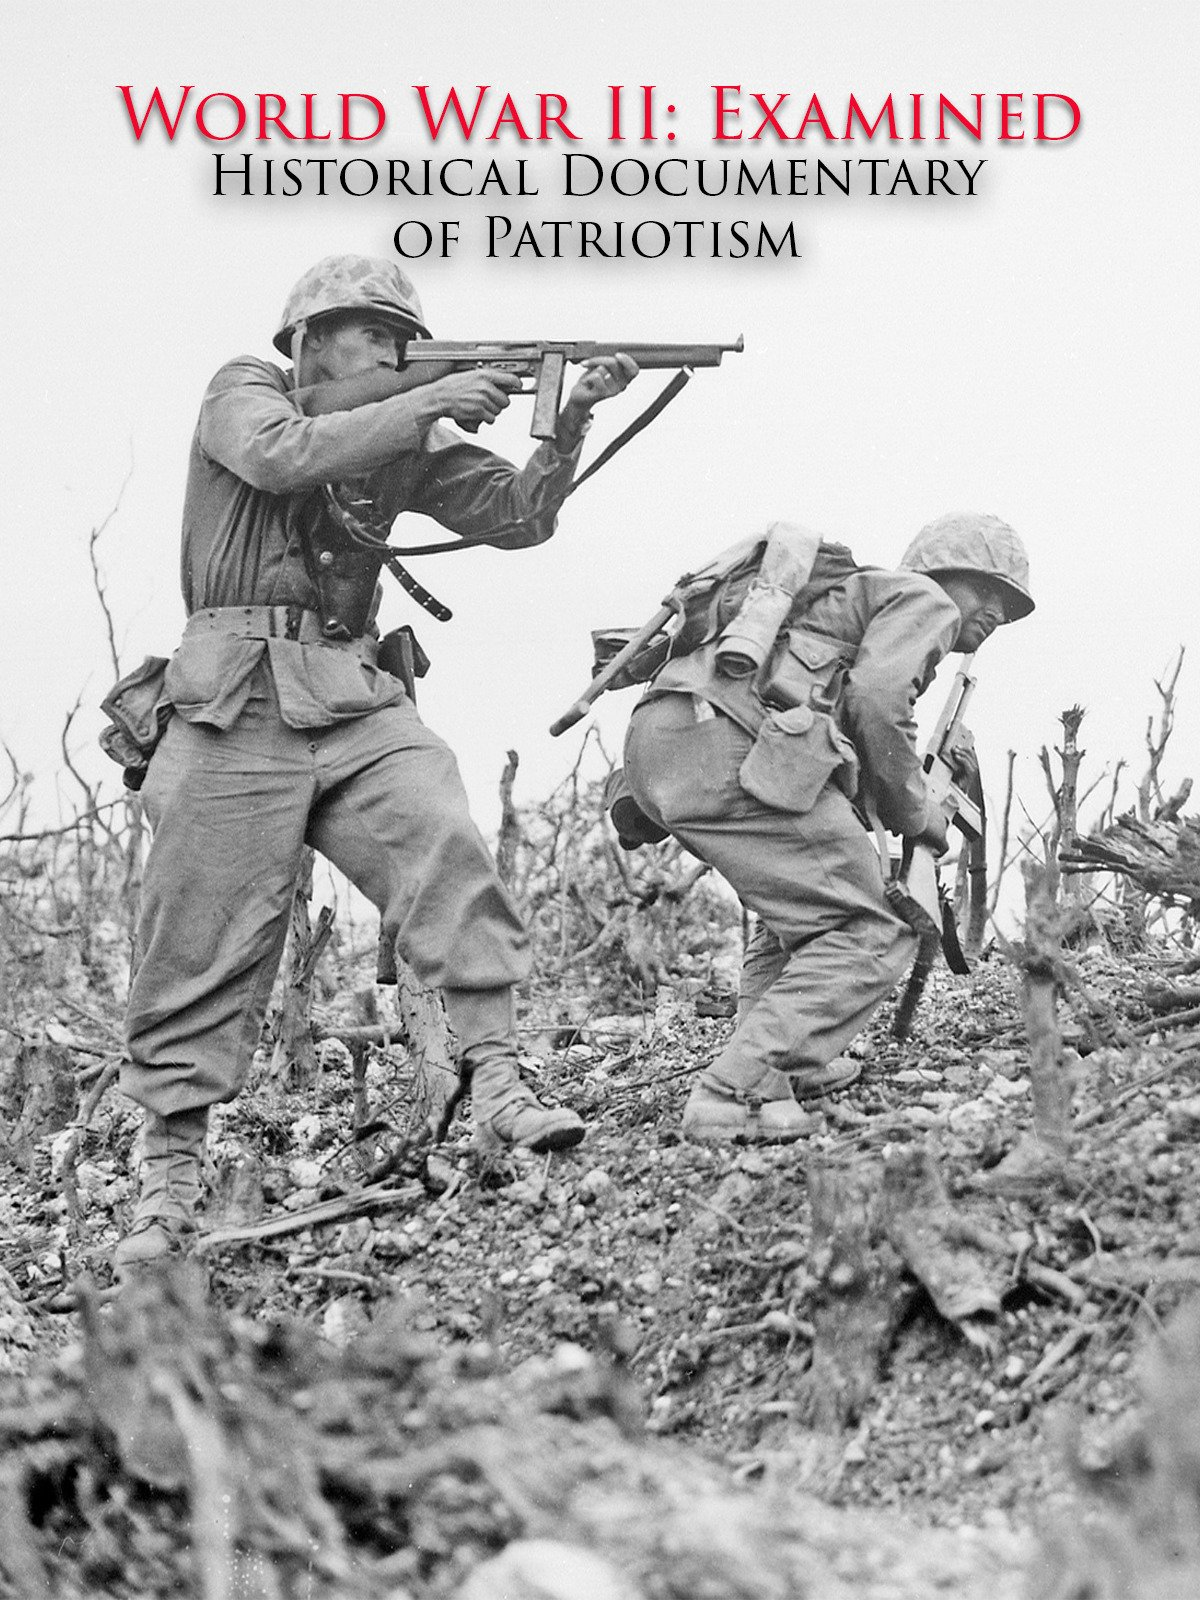 Clip: World War II: Examined Historical Documentary of Patriotism